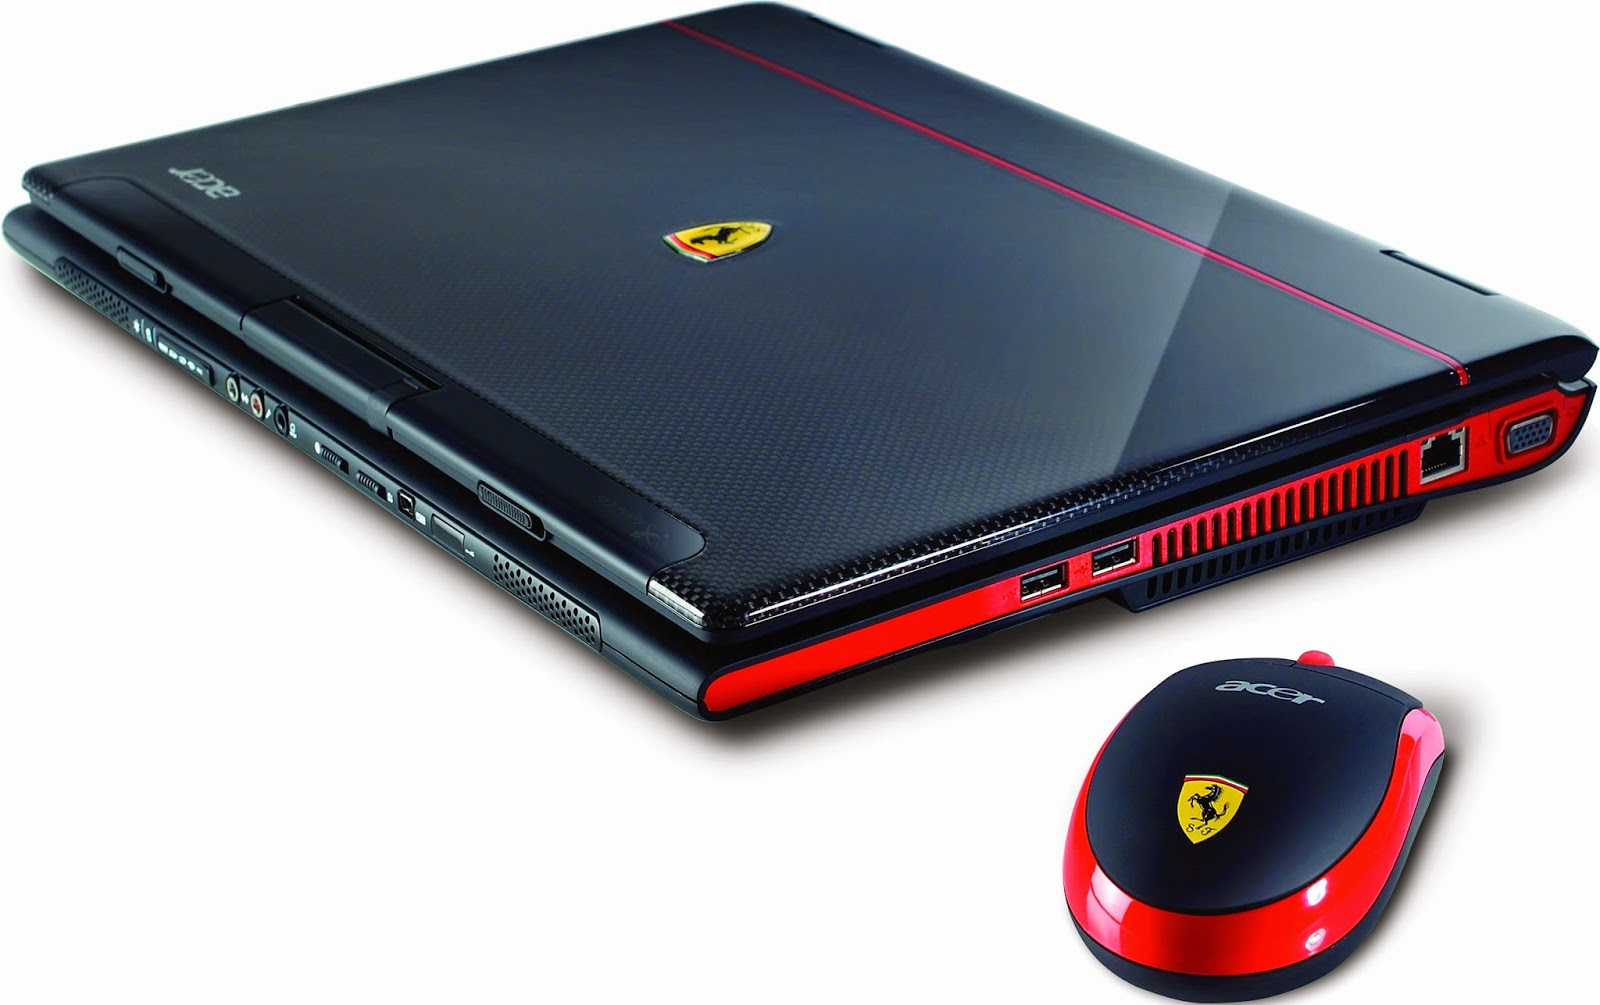 Acer Laptop Ferrari 1100 Laptop Specifications, review and driver download